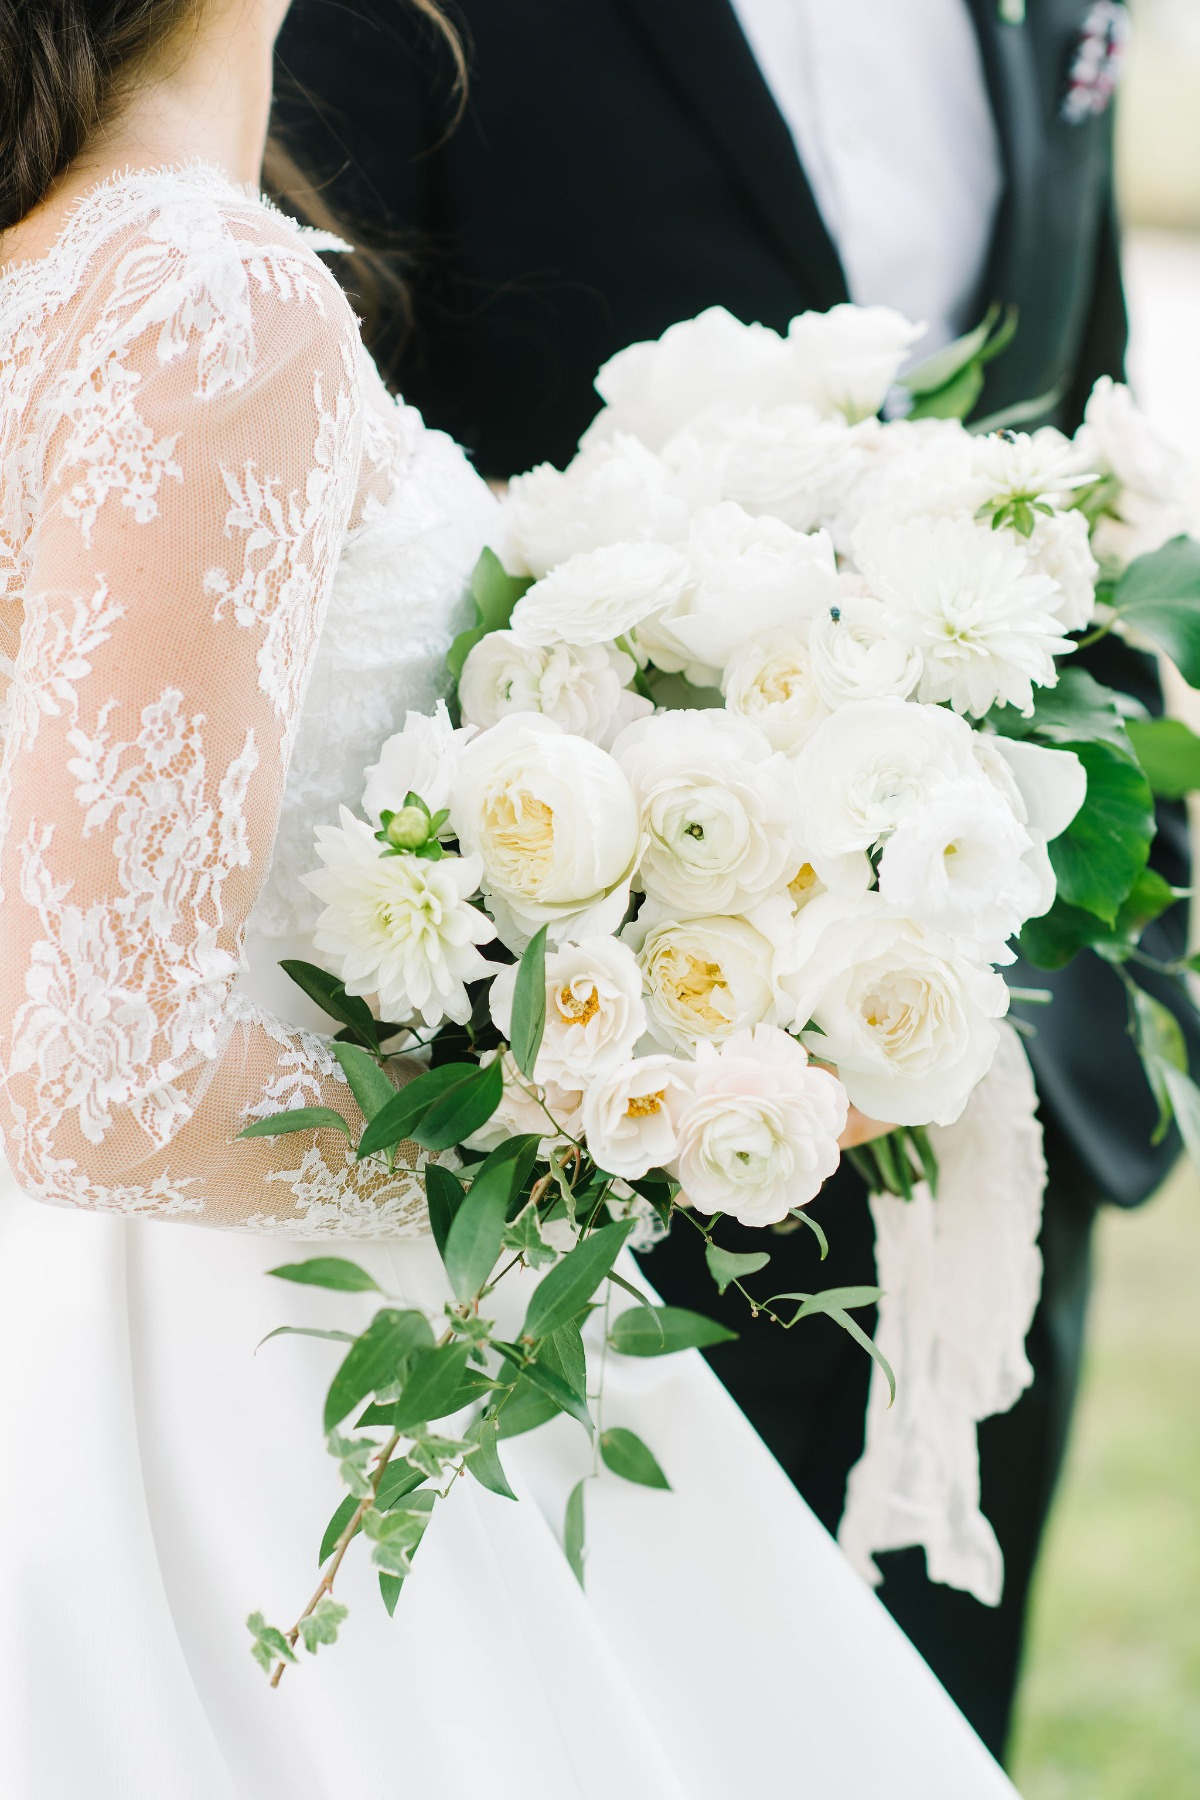 all white wedding bouquet with a sprinkle of greenery